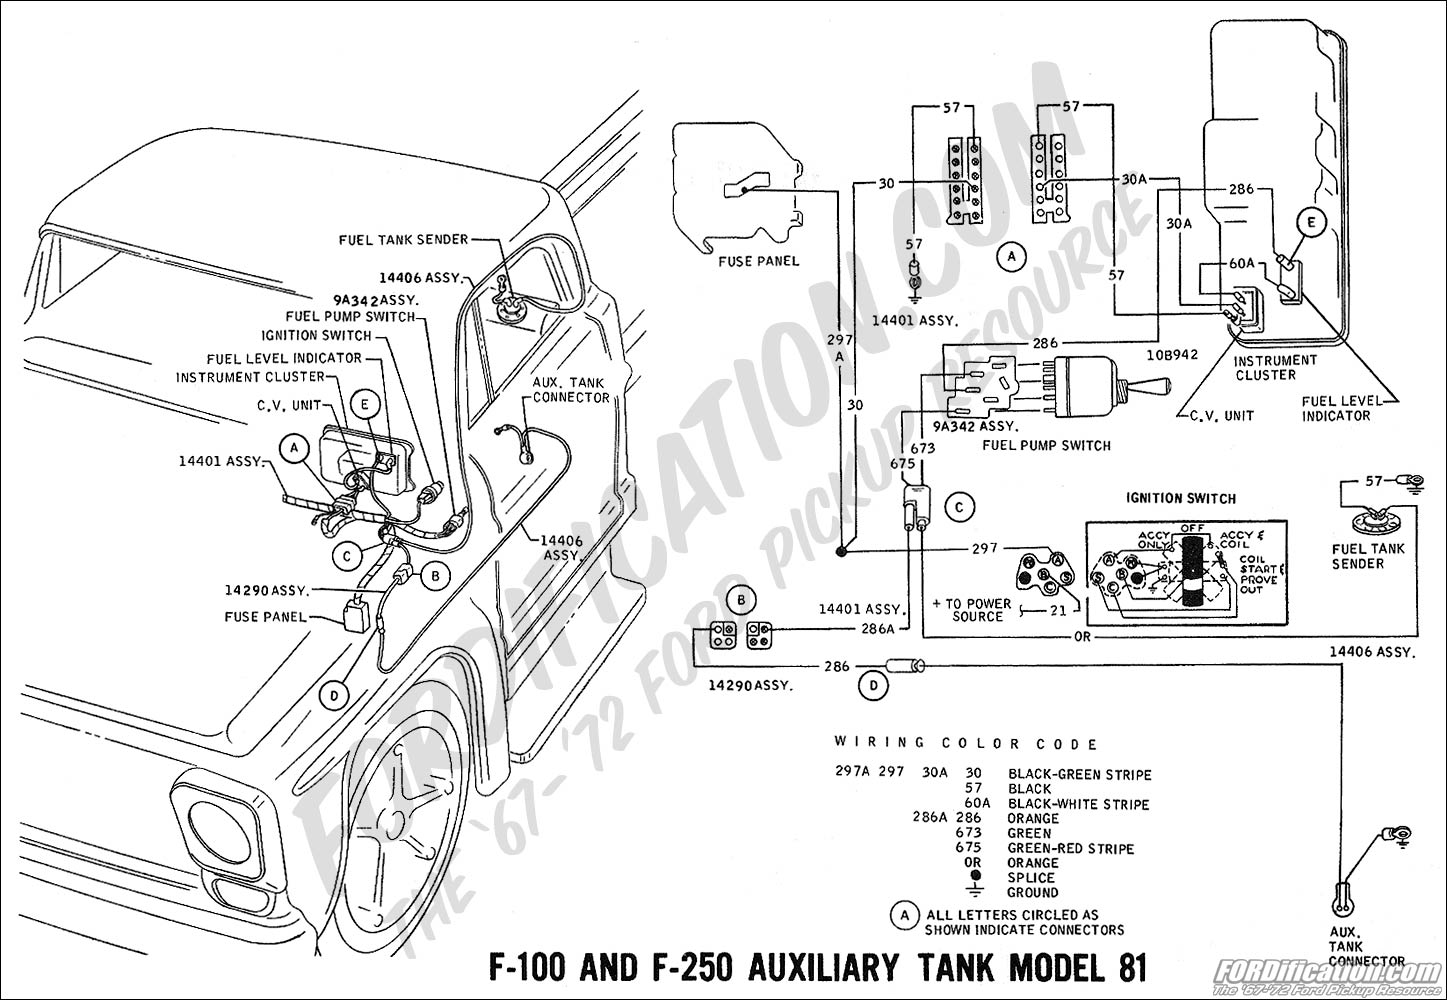 1977 Dodge Motorhome Wiring Diagram Simple Guide About Booster Pump Ford Truck Technical Drawings And Schematics Section H